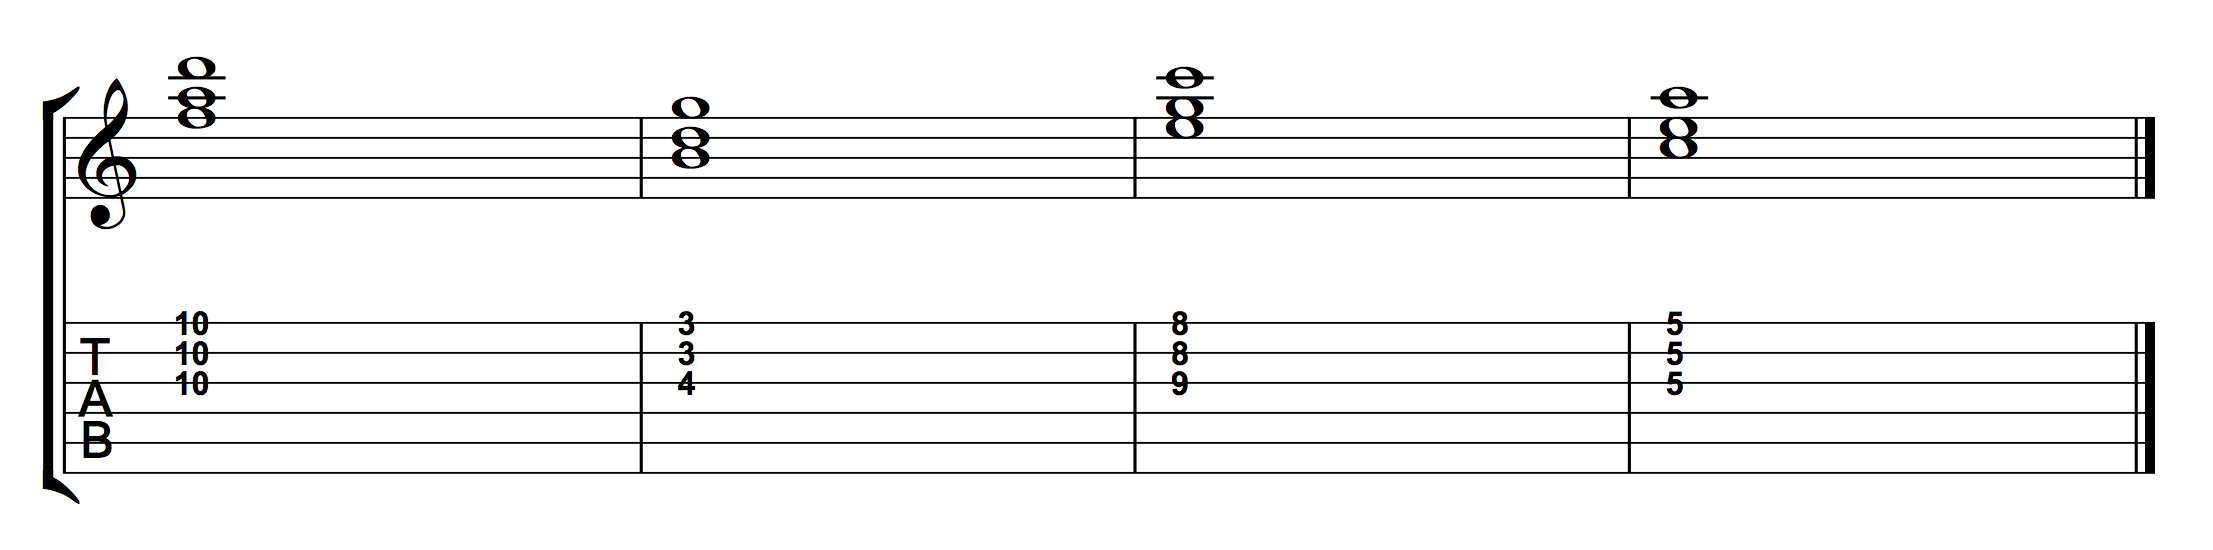 Chord Progression Using 1st Inversion Triads